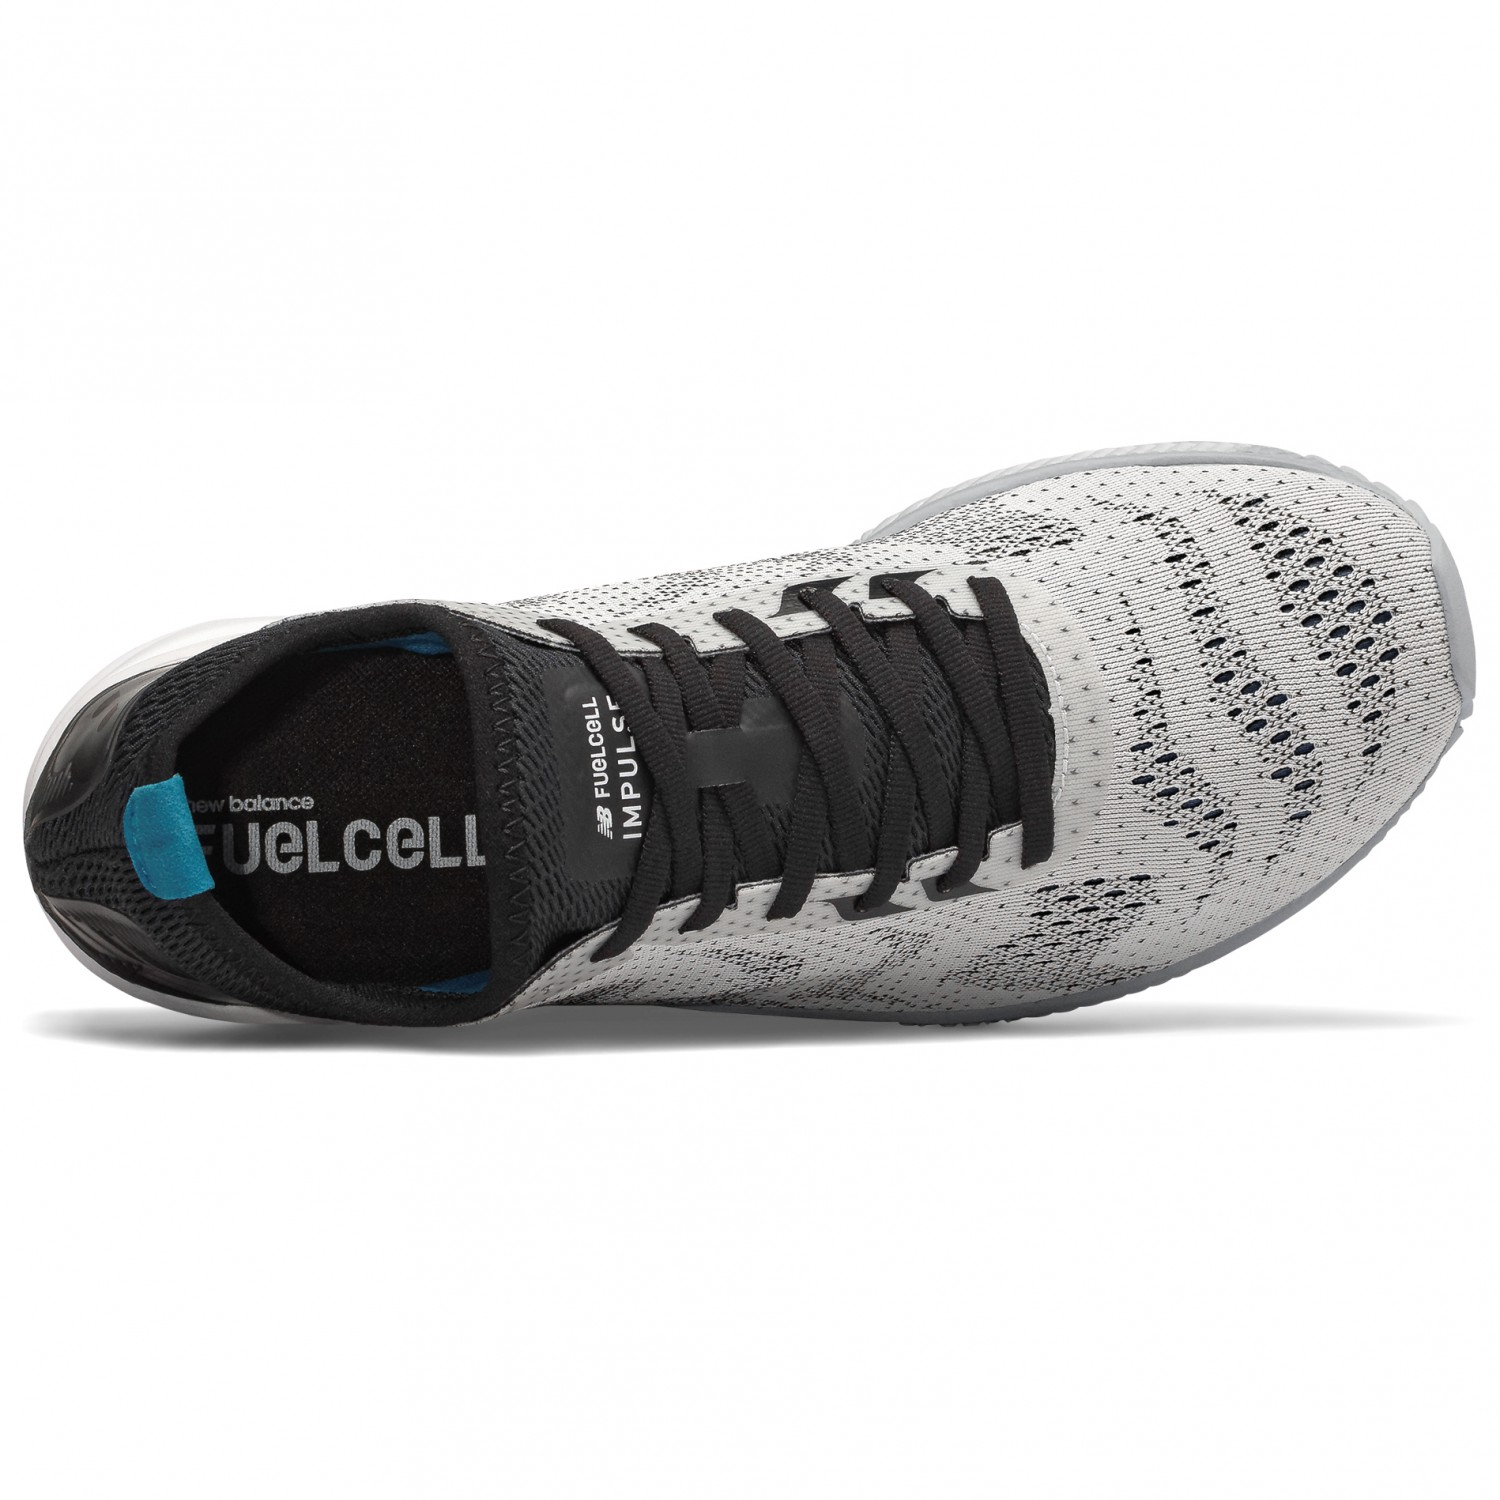 New Balance Fuelcell Impulse - Running Shoes Men s   Free UK ... 94db4a93f023